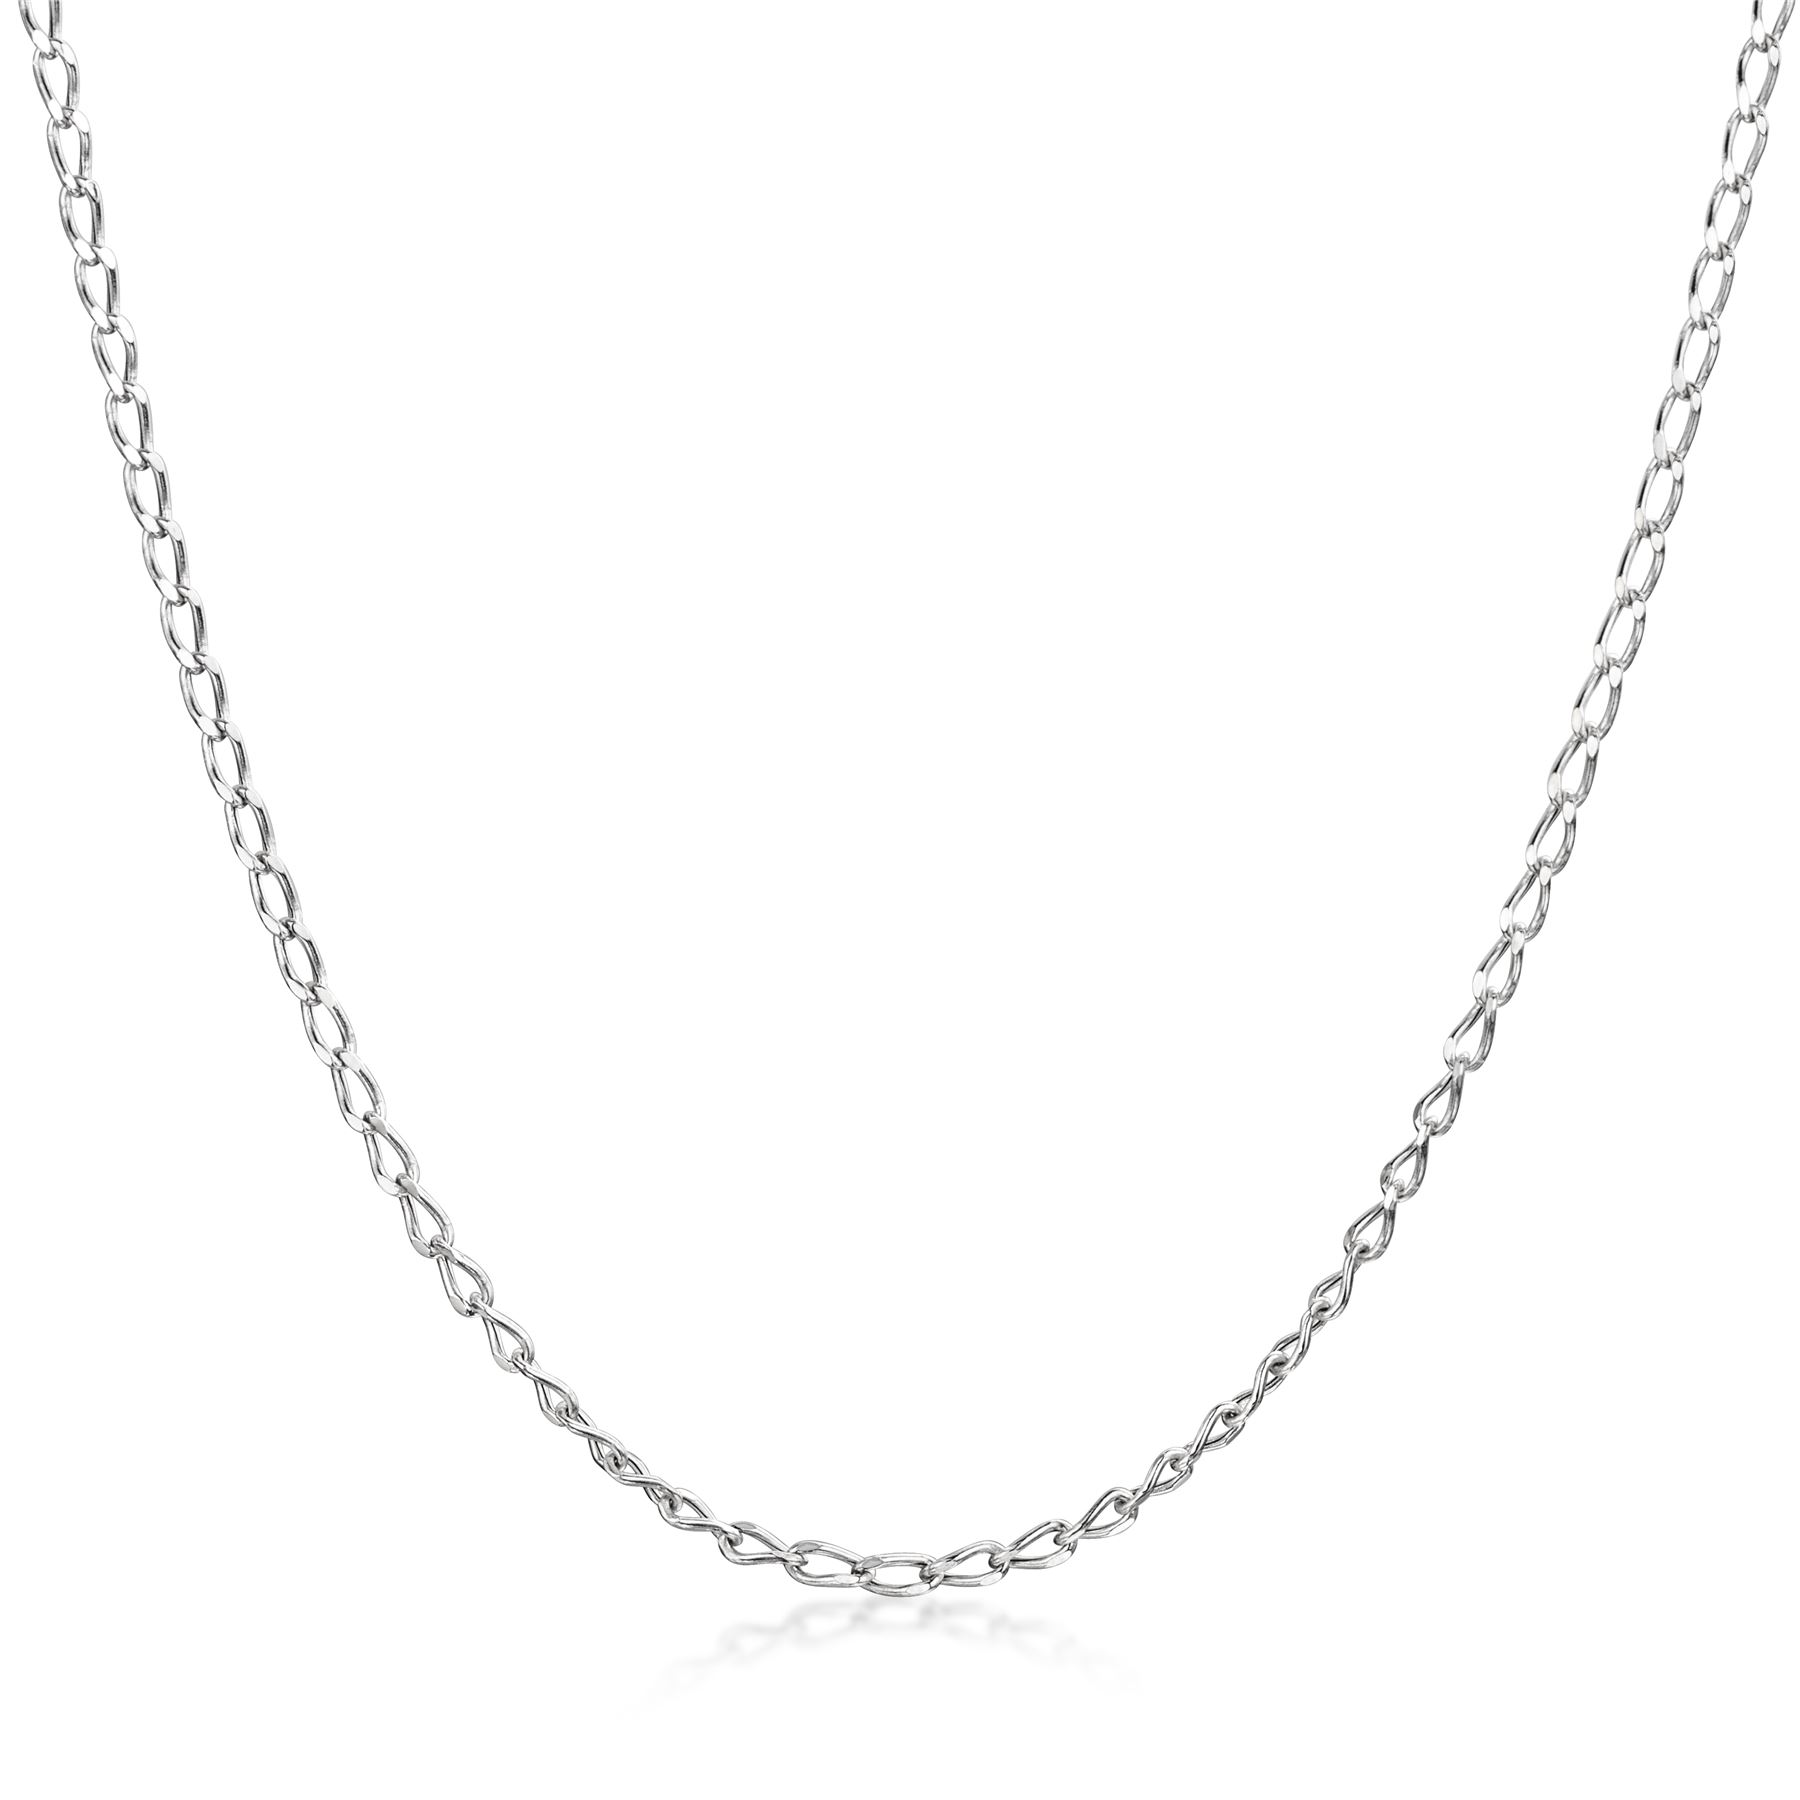 Amberta-Genuine-Solid-10k-Gold-Chain-Adjustable-Necklace-for-Women-and-Men thumbnail 3